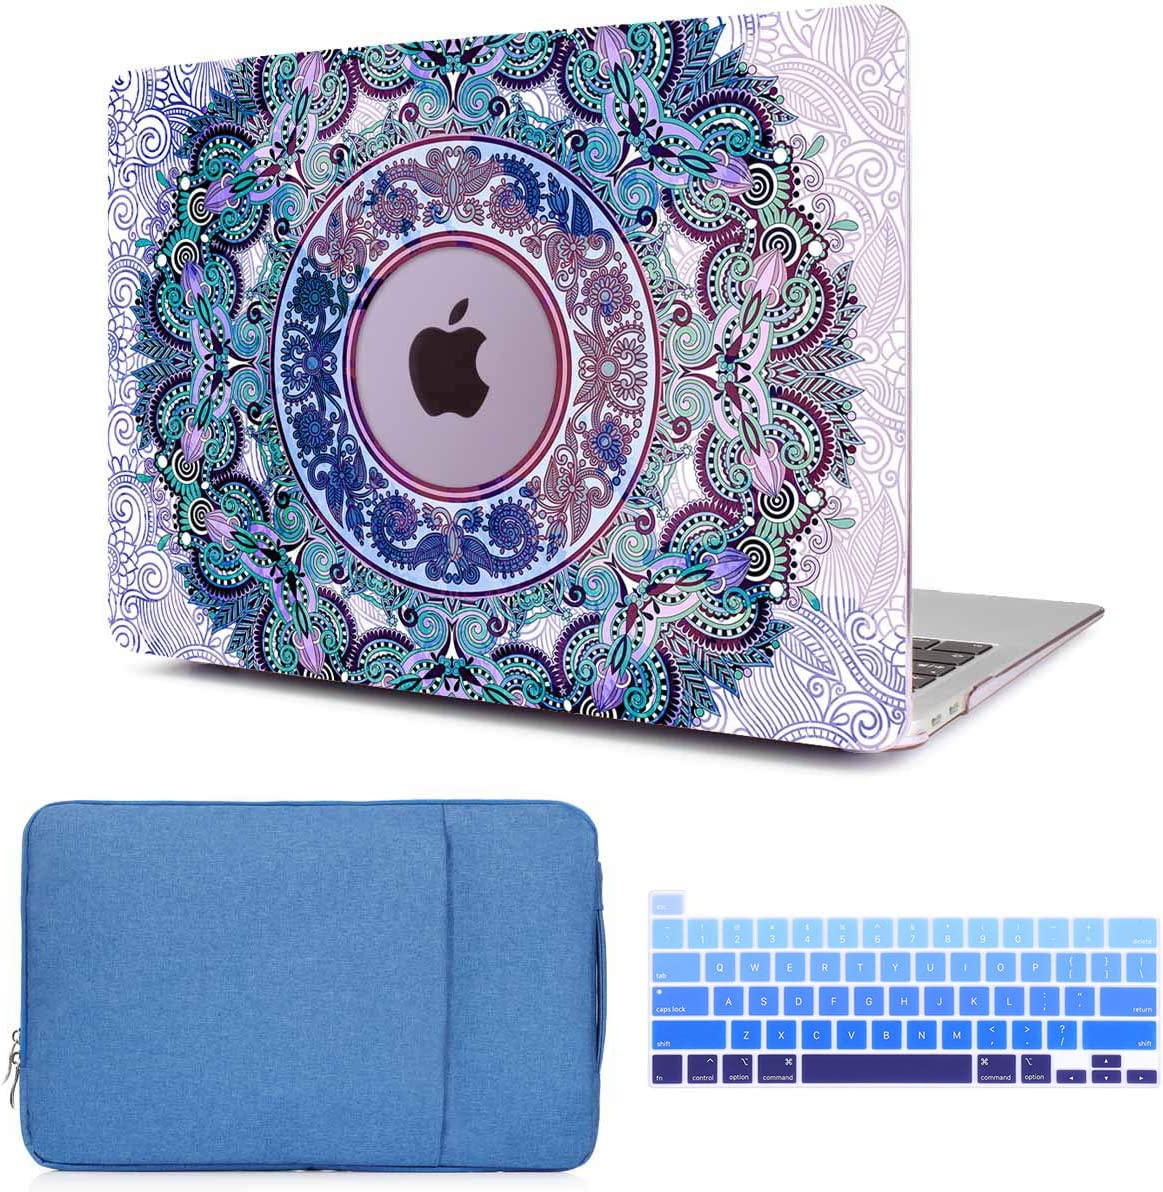 CiSoo MacBook Pro 15 Inch Case 2019 2018 2017 2016 Mandala Laptop Hard Shell Case for Model Number A1707/A1990,Keyboard Cover, Sleeve,Protective Bag,Compatible with MacBook Pro 15'' with Touch Bar